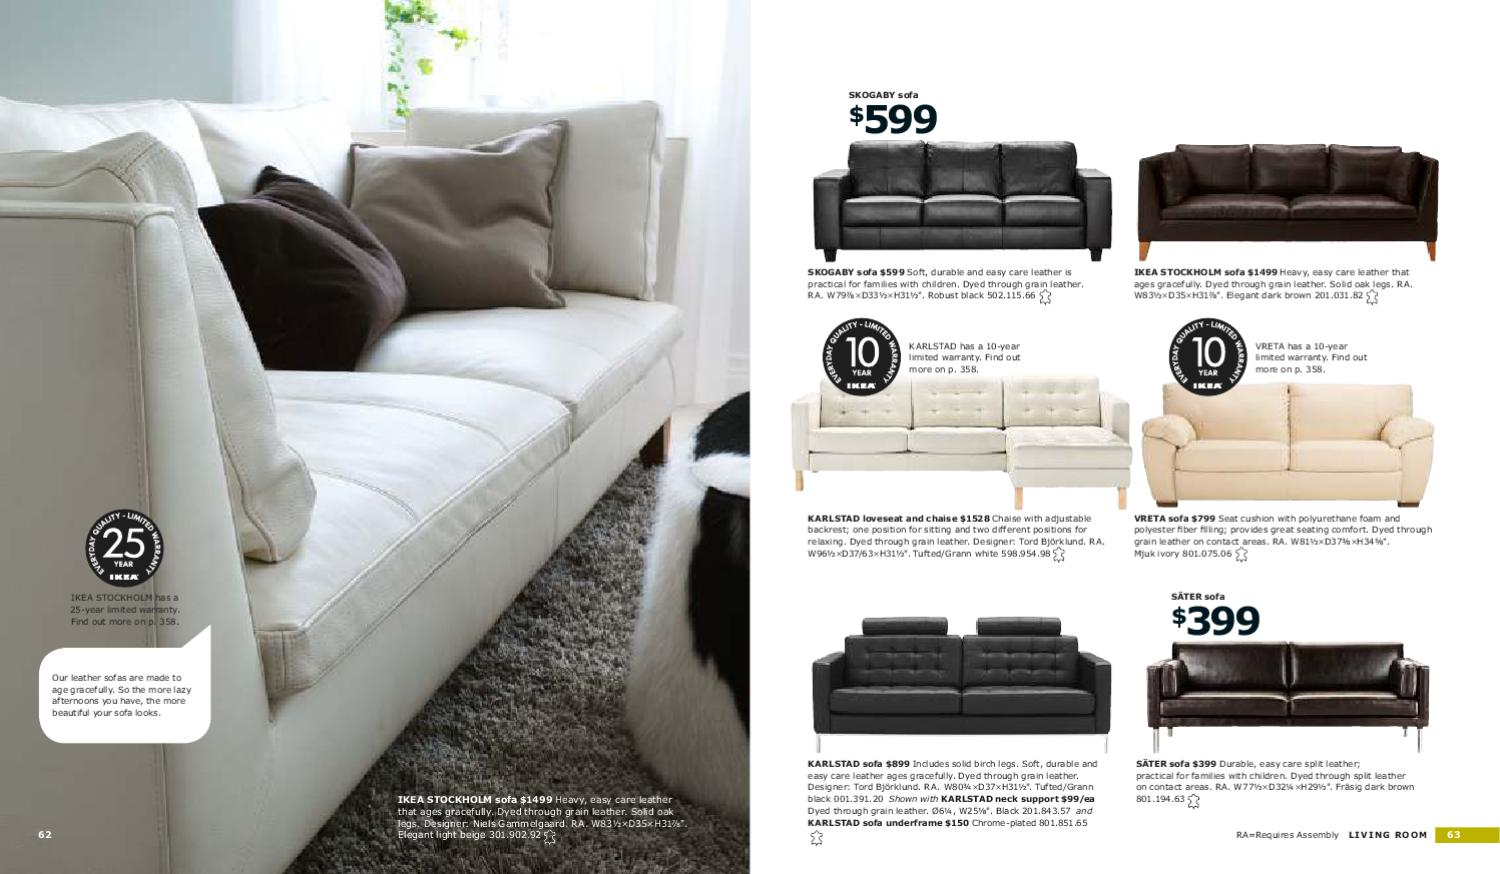 Ikea Sofa Säter Ikea Catalog 2012 Usa Version English By Lakbermagazin Issuu